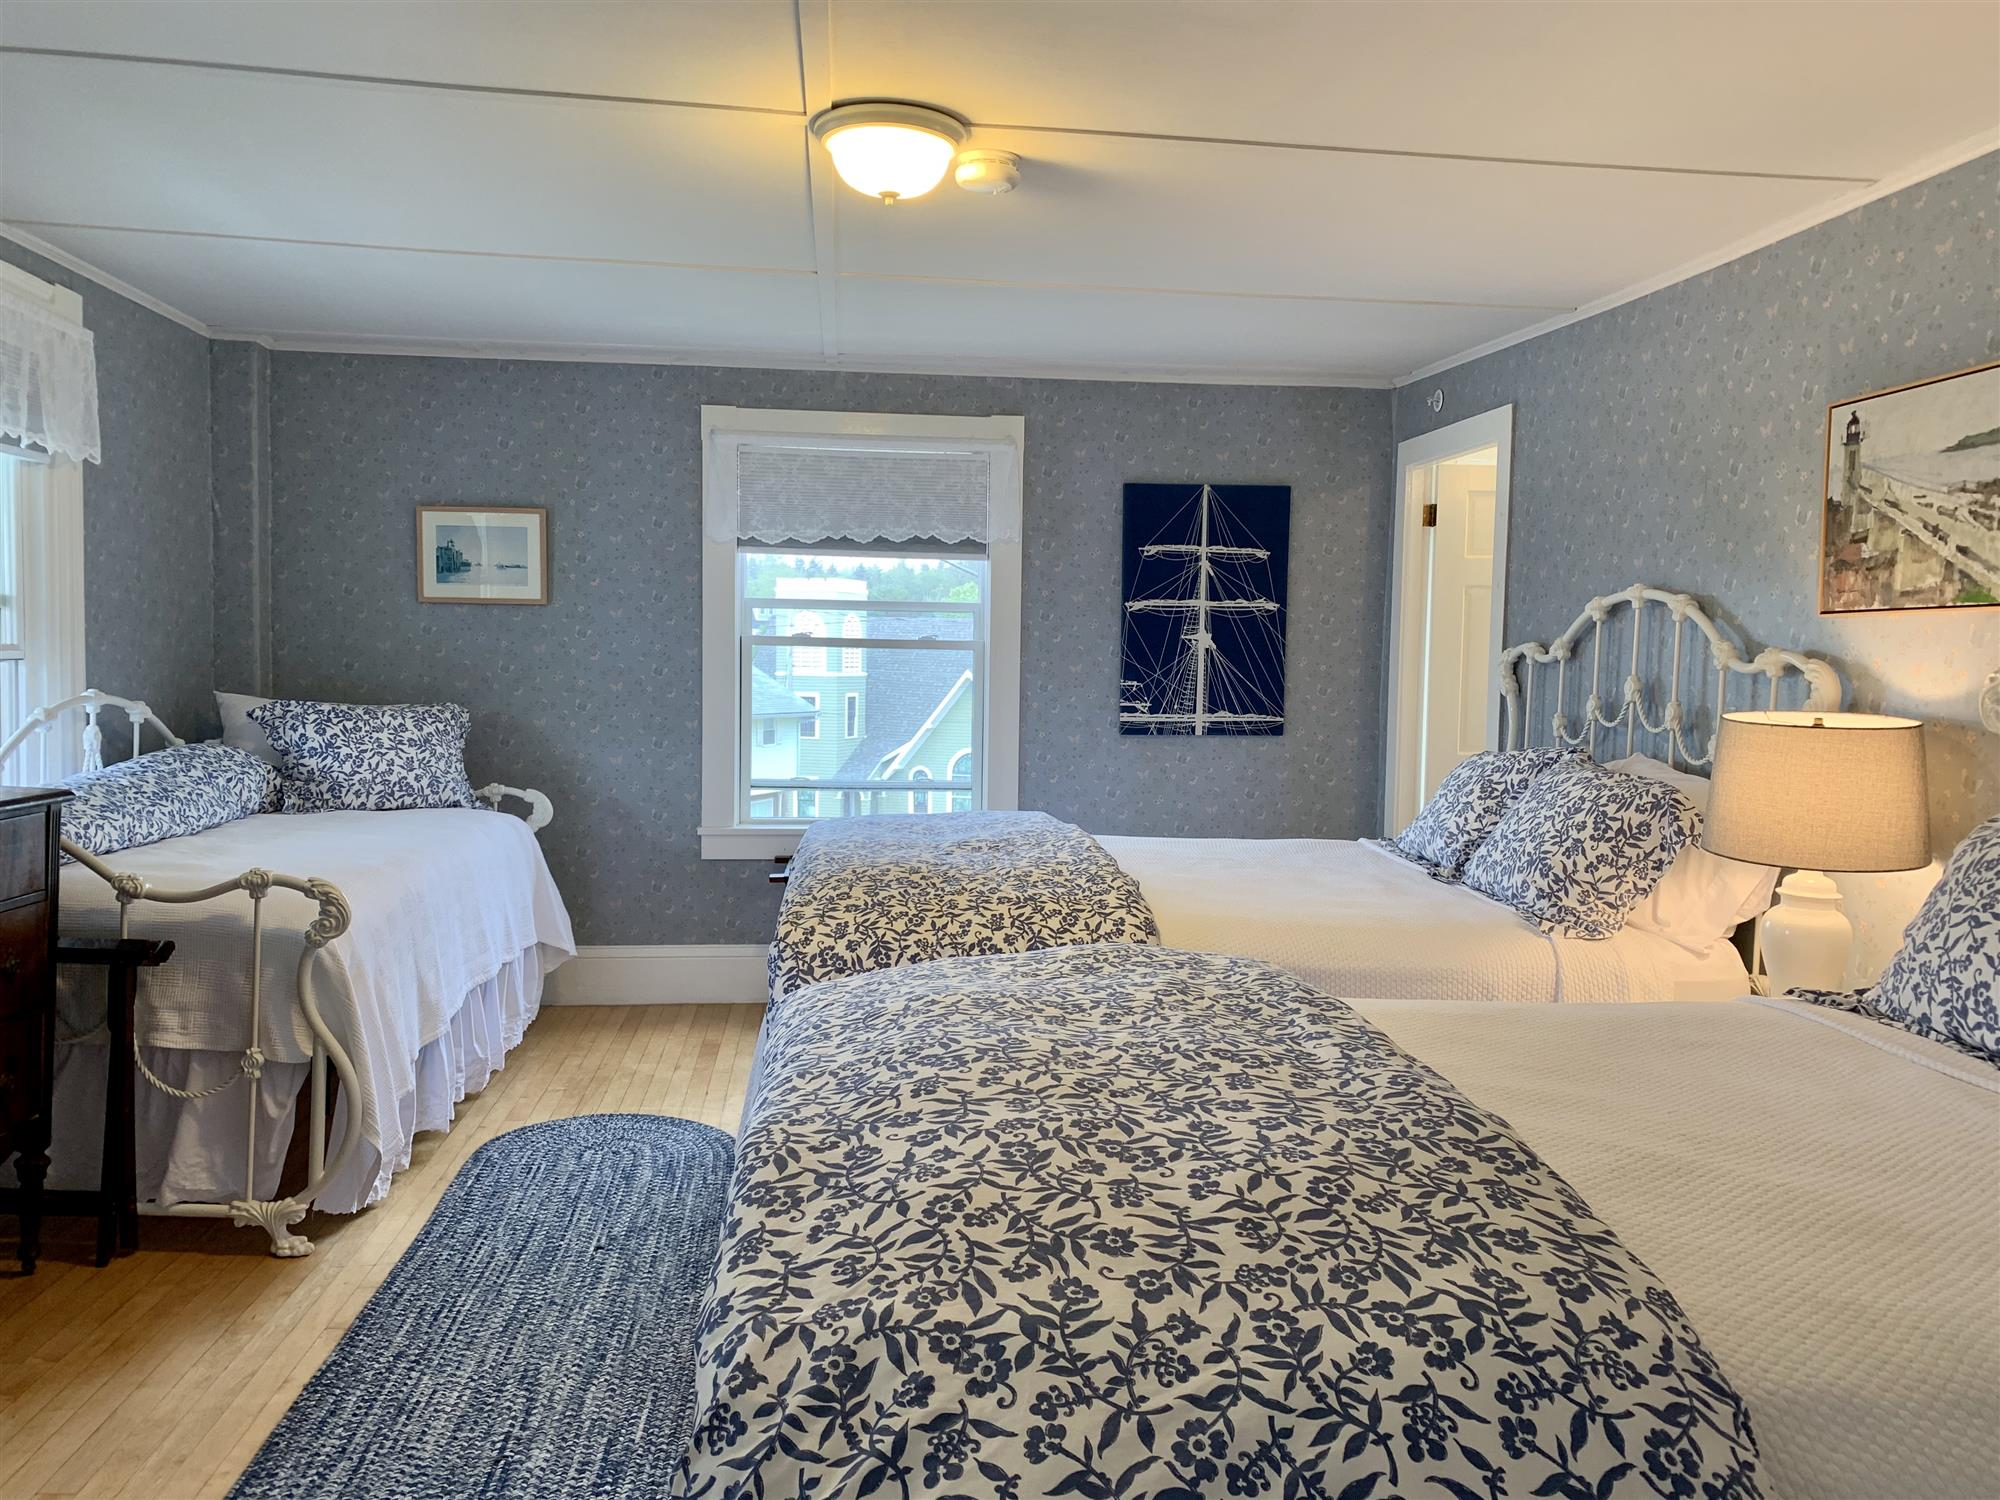 Image for 15) Teel Island (Room 1) at Ocean House